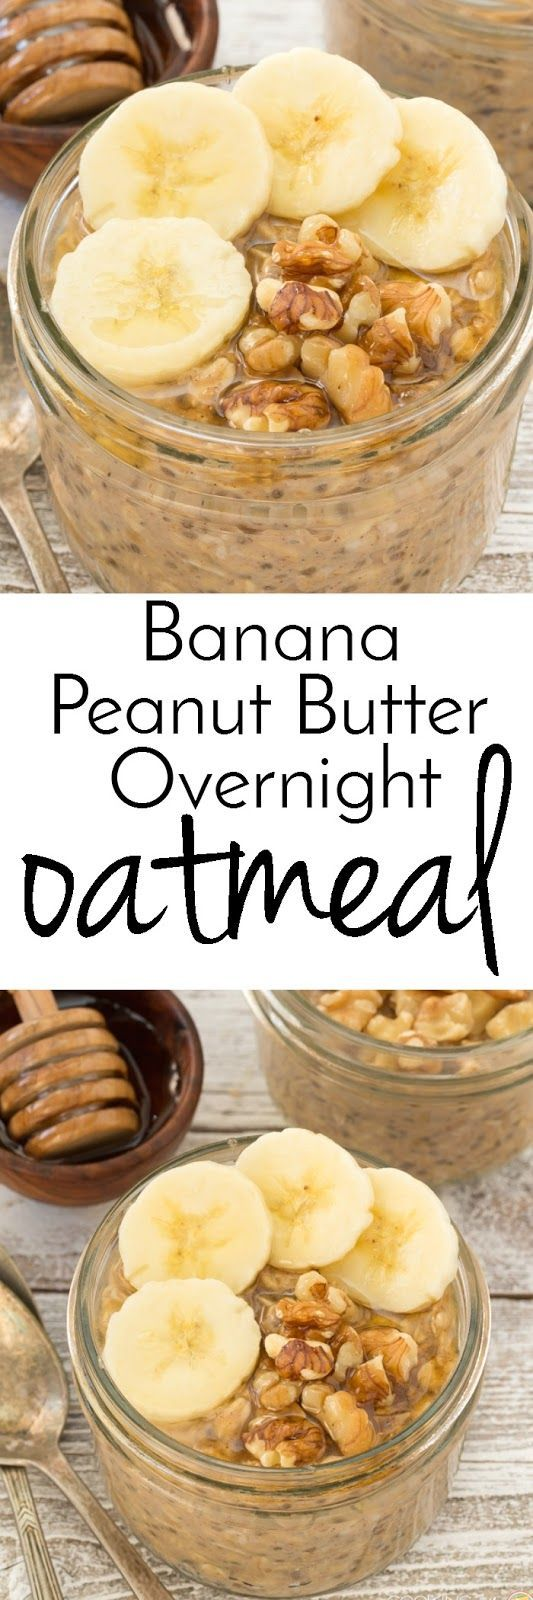 Overnight Banana Peanut Butter Oatmeal